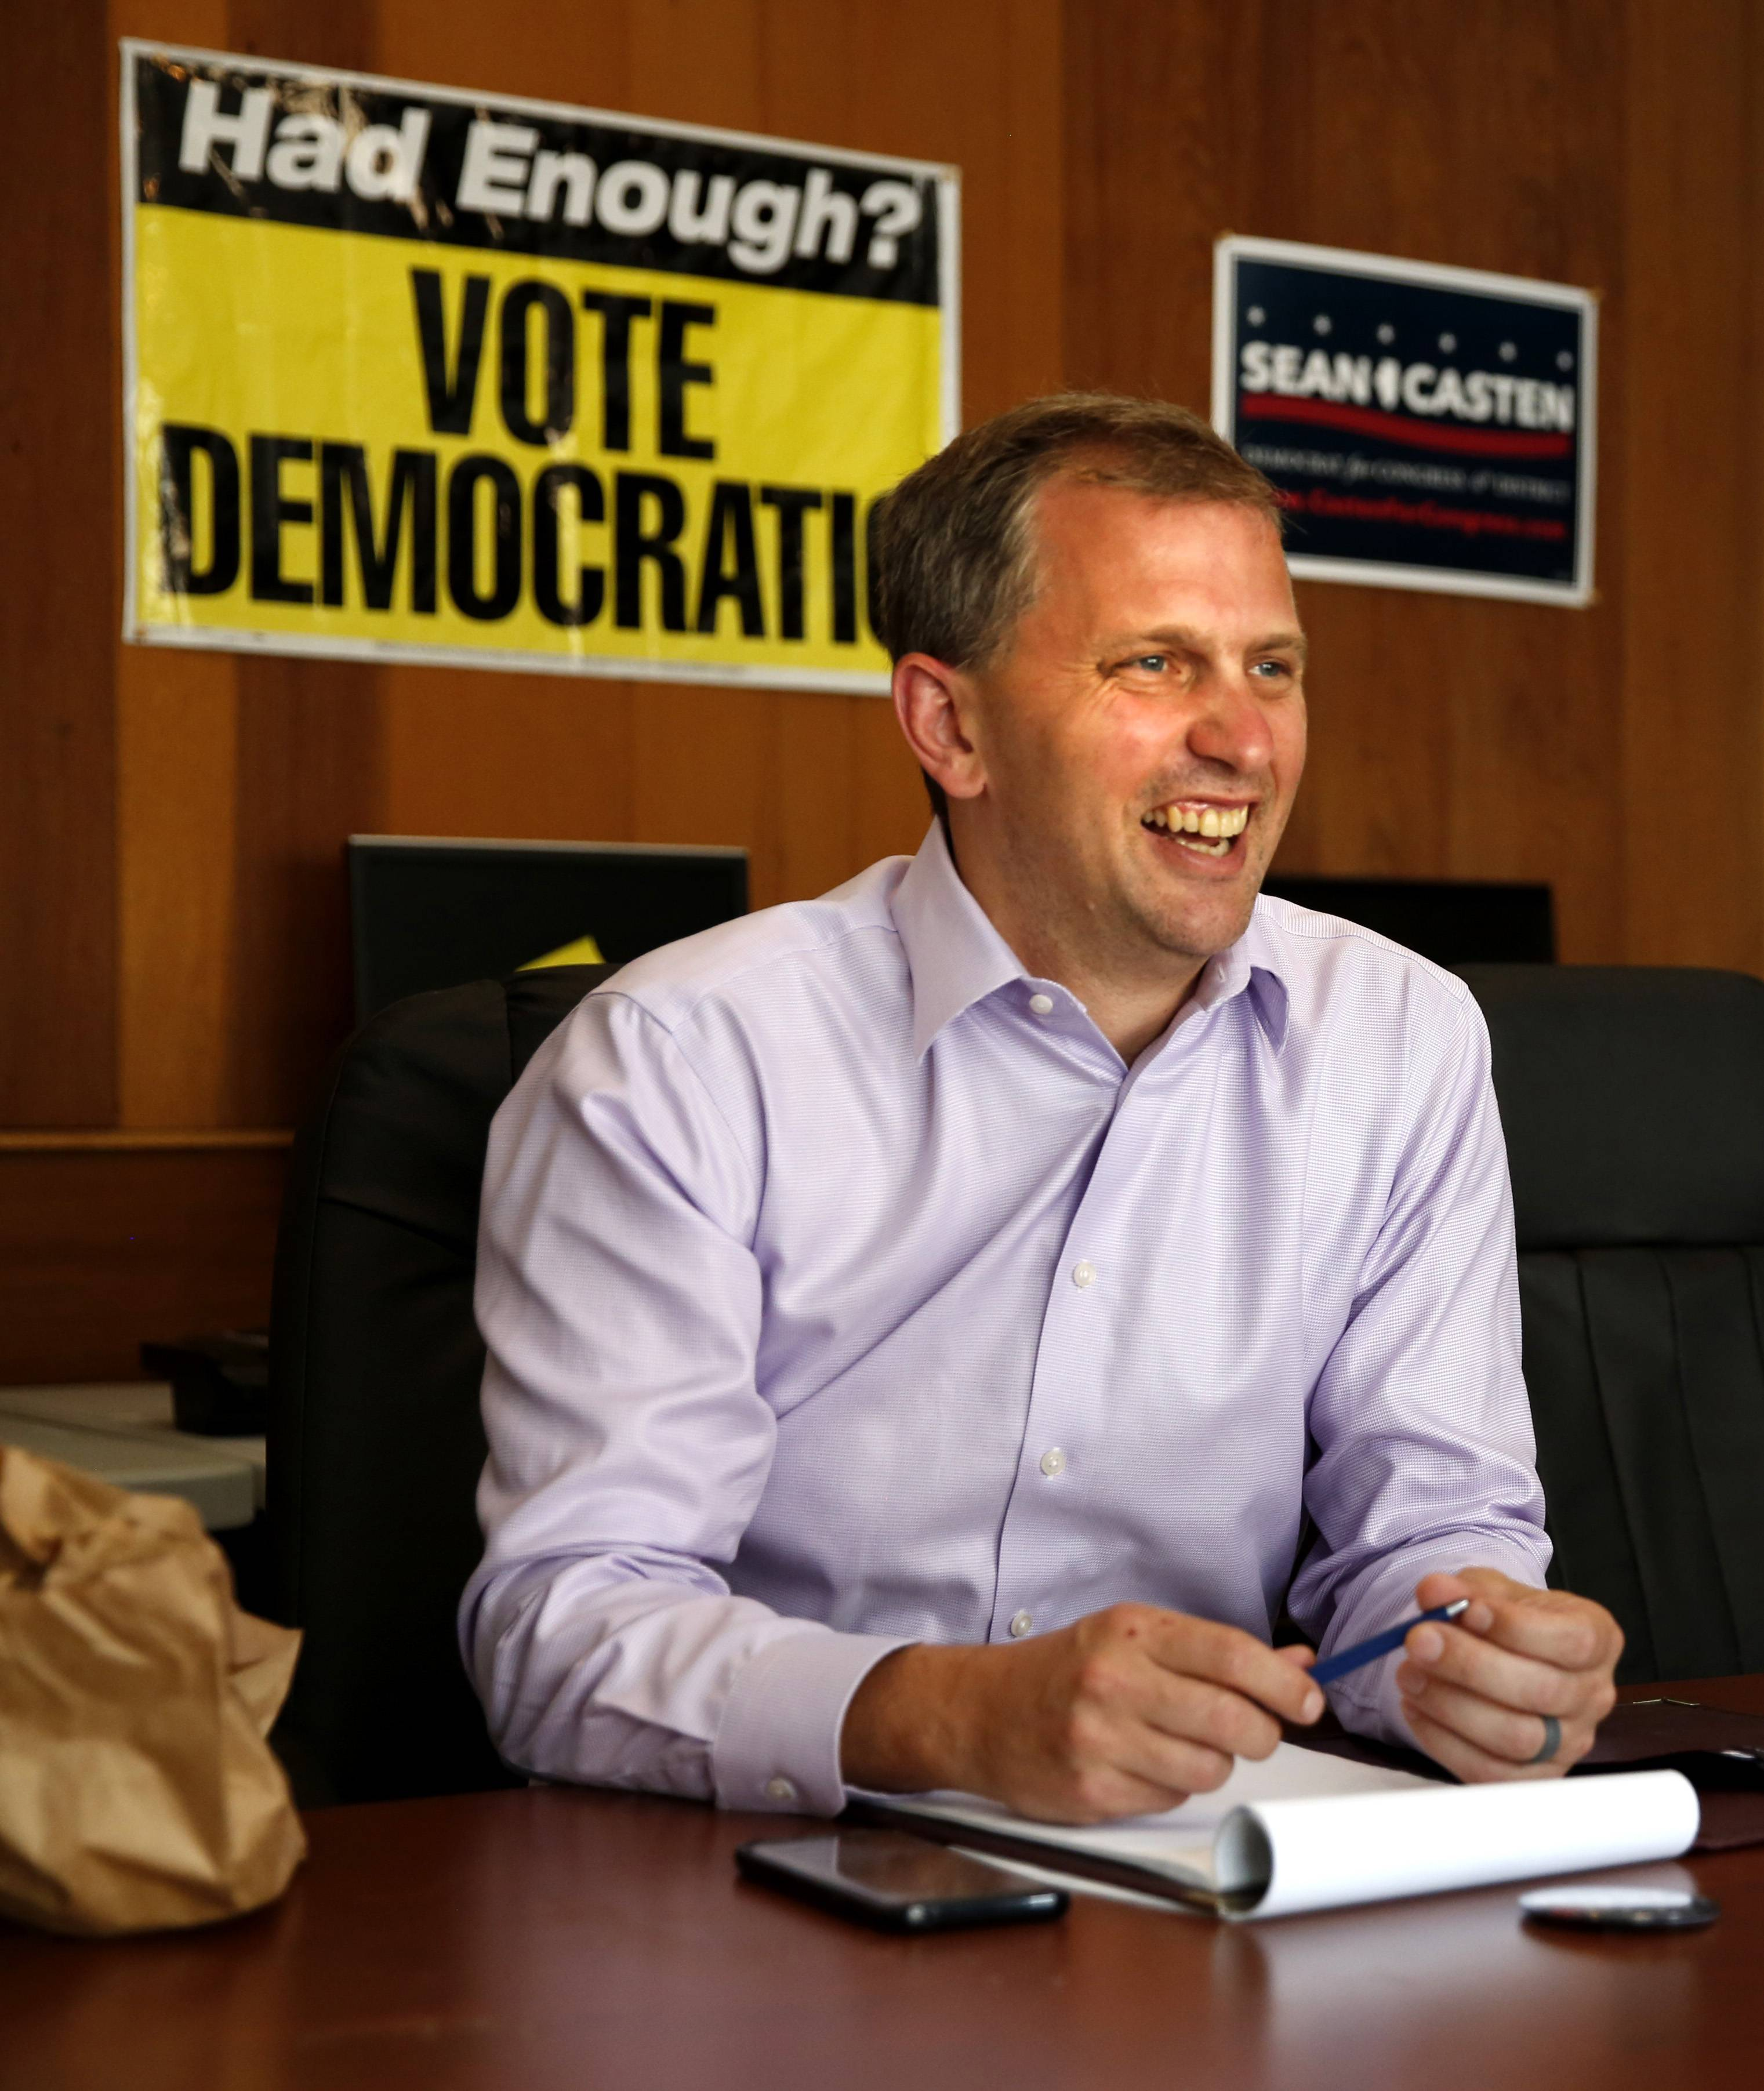 Graph paper and cellphone at hand, sandwich lunch to the side, Sean Casten recounts the daily activities of campaigning for the 6th District seat against incumbent Republican Peter Roskam of Wheaton.